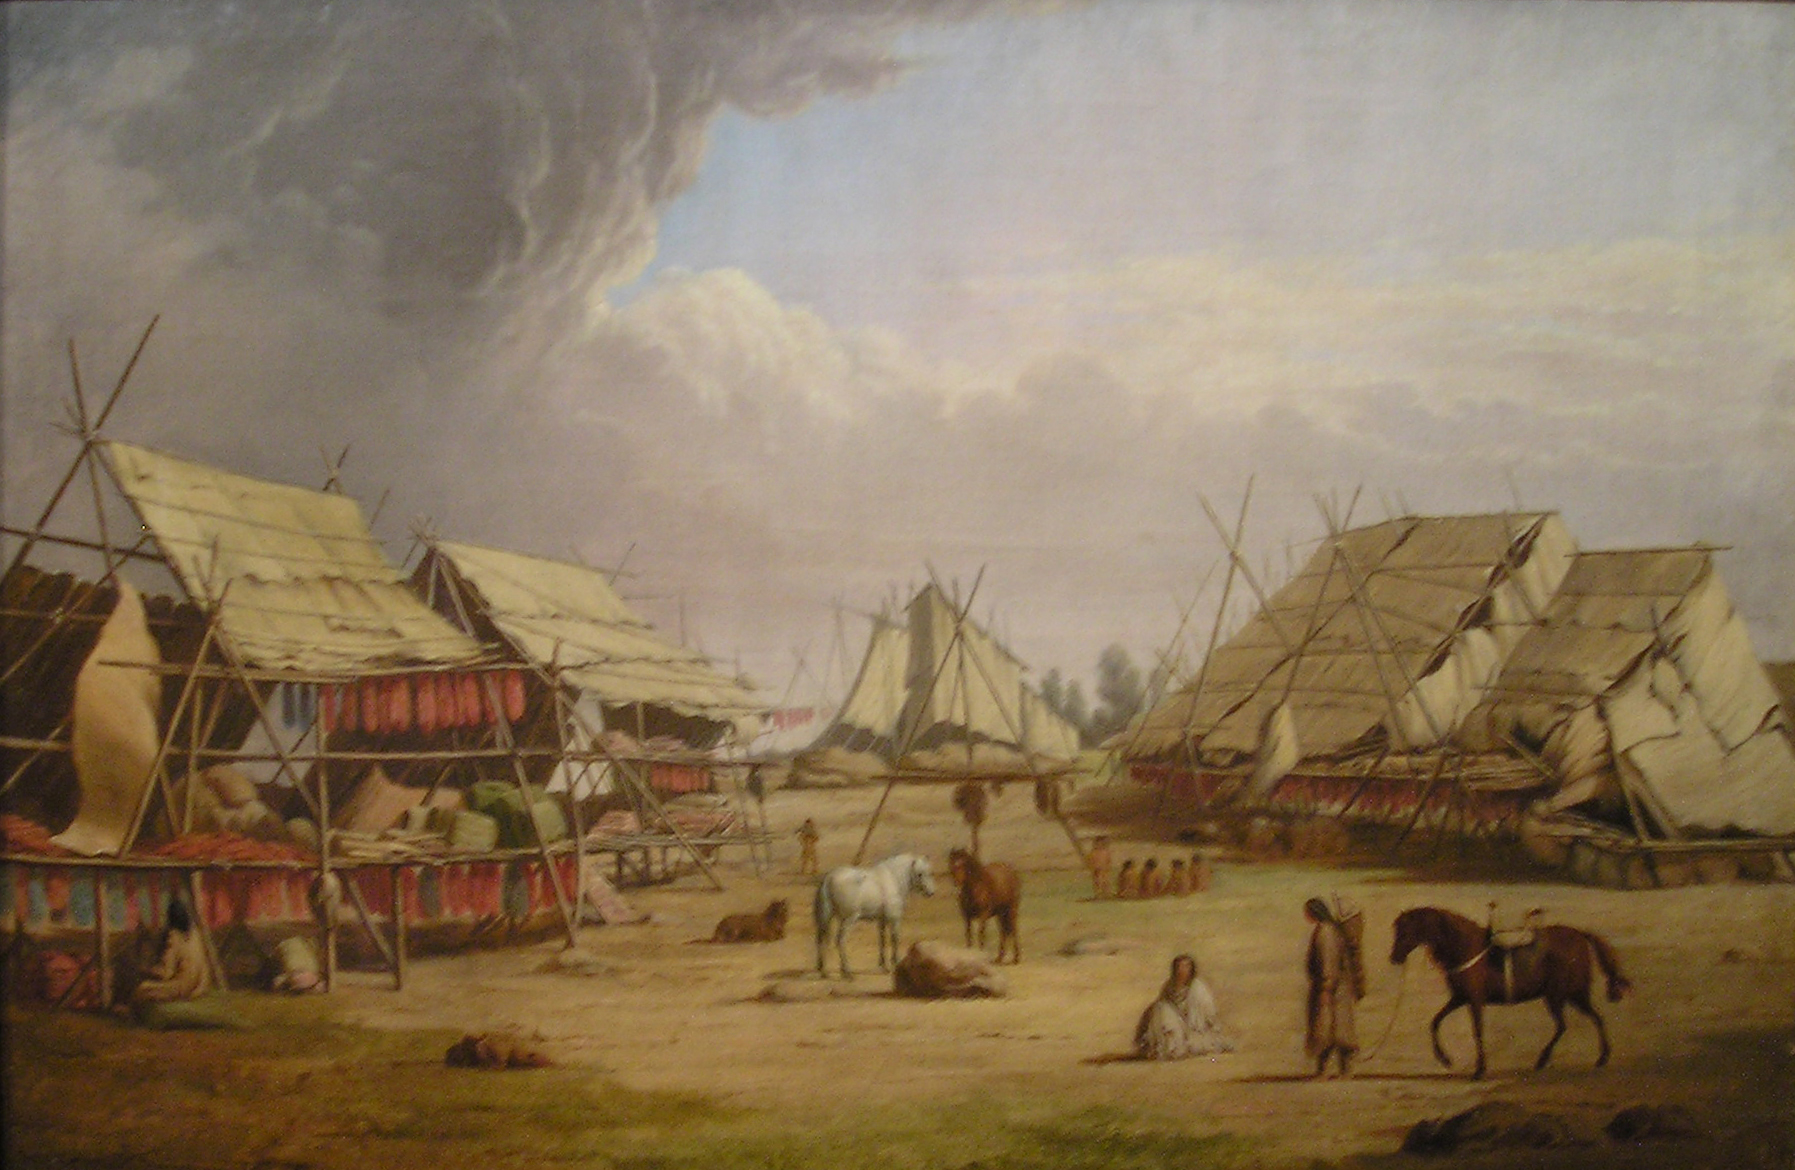 Painting of a village. Houses for drying fish are visible. Horses, dogs, and people stand.